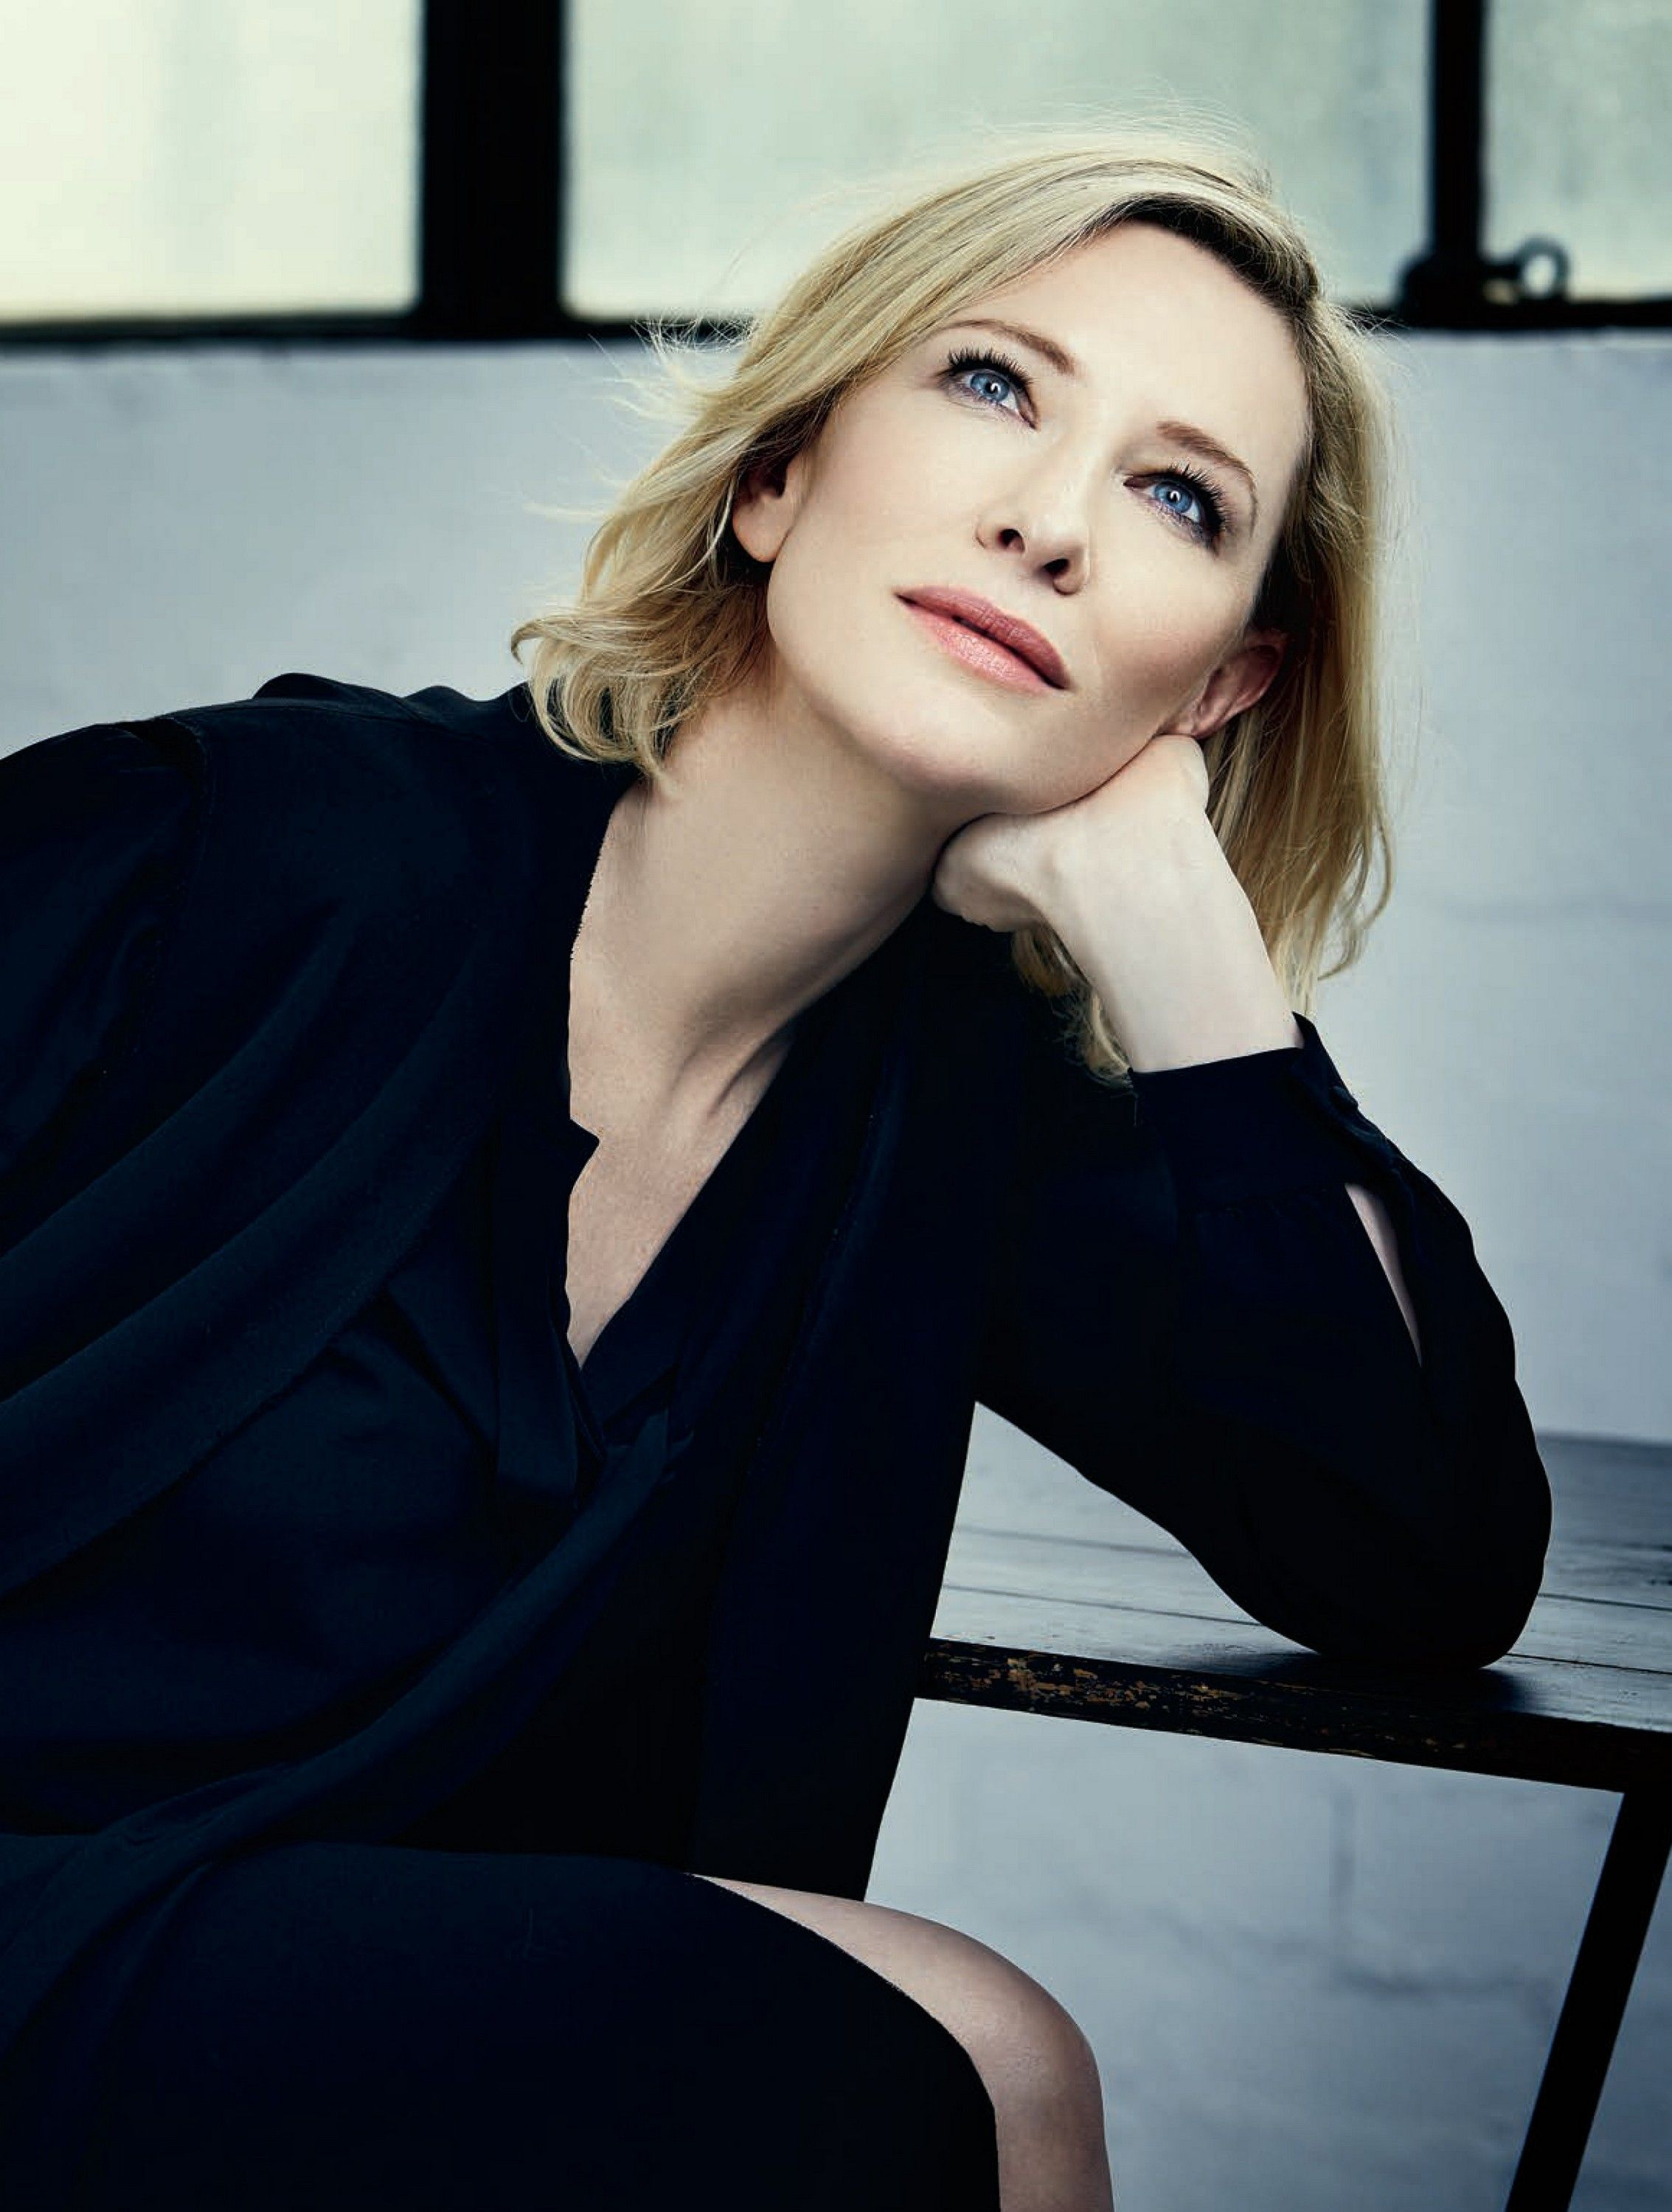 Cate Blanchett photoshoot for Rhapsody Magazine Dec 2016 Photography by Michele Aboud